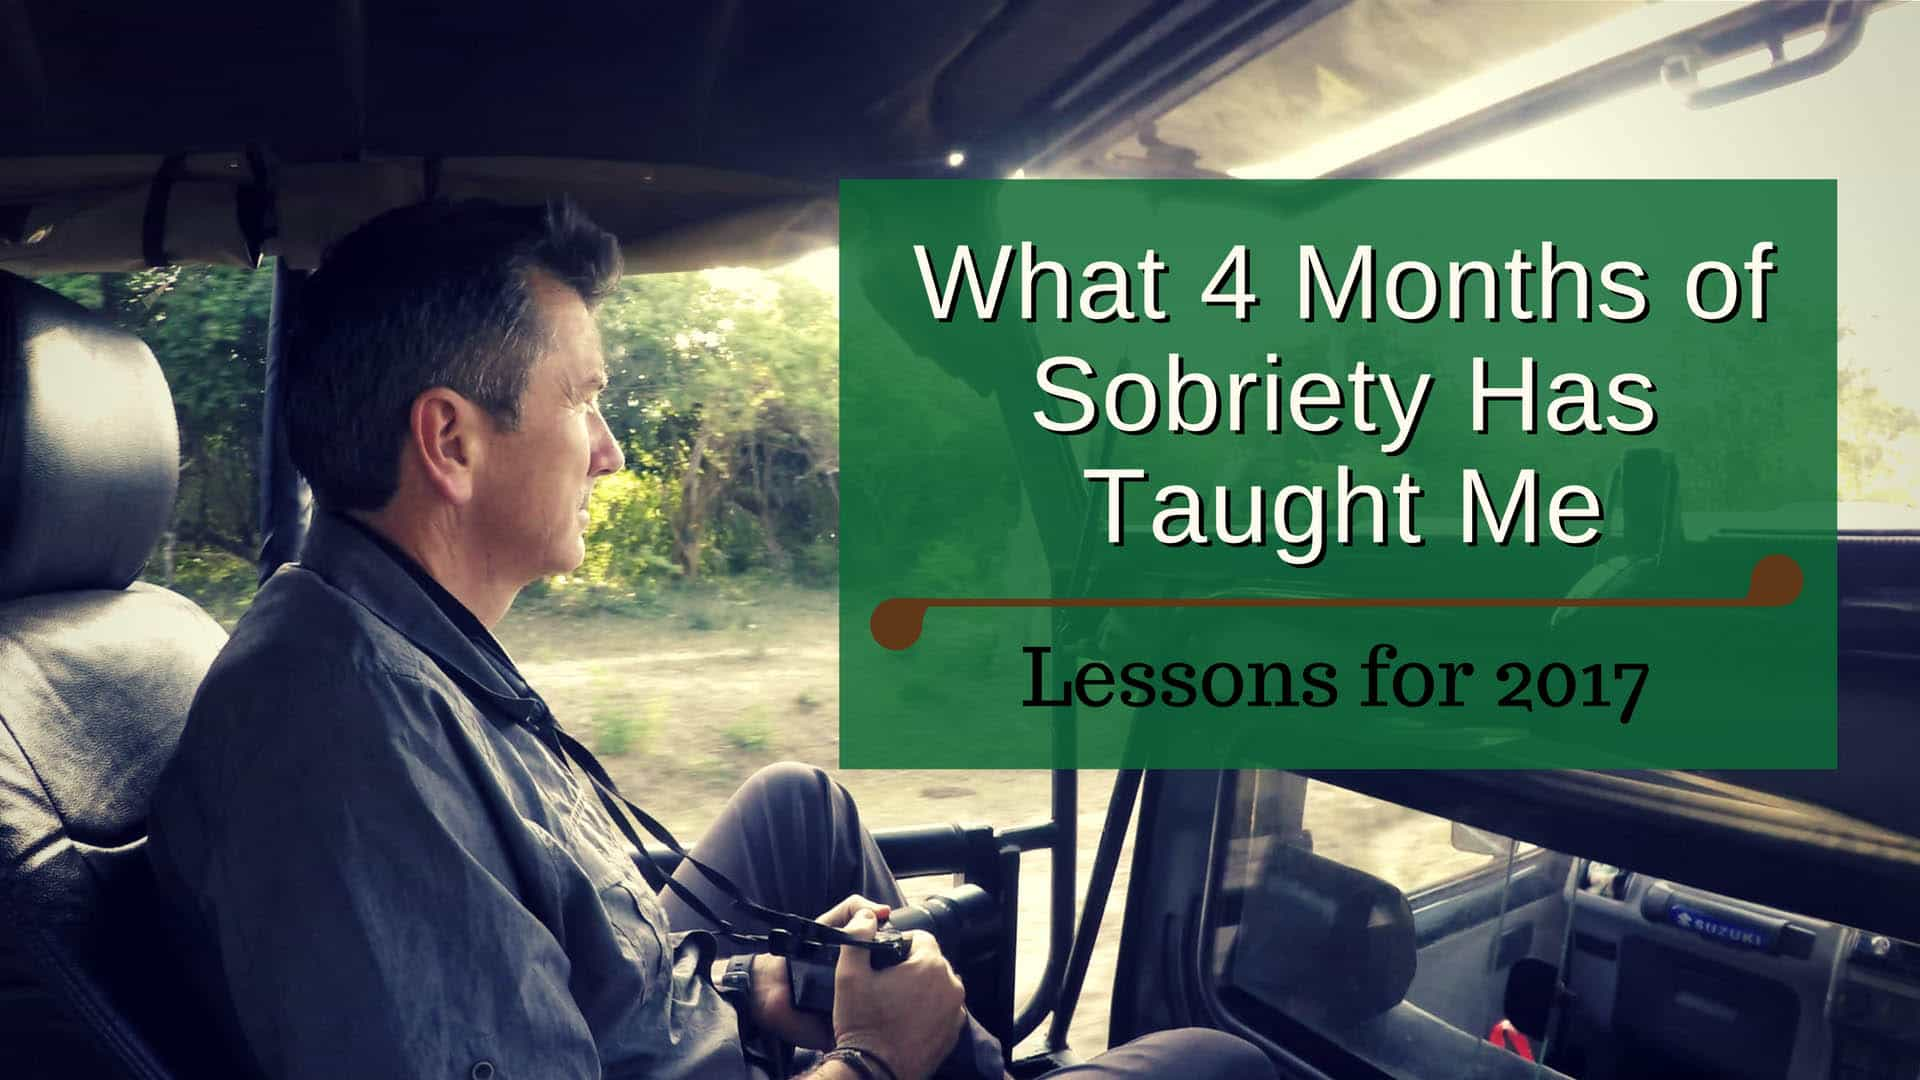 What 4 Months Of Sobriety Has Taught Me And Lessons For 2017